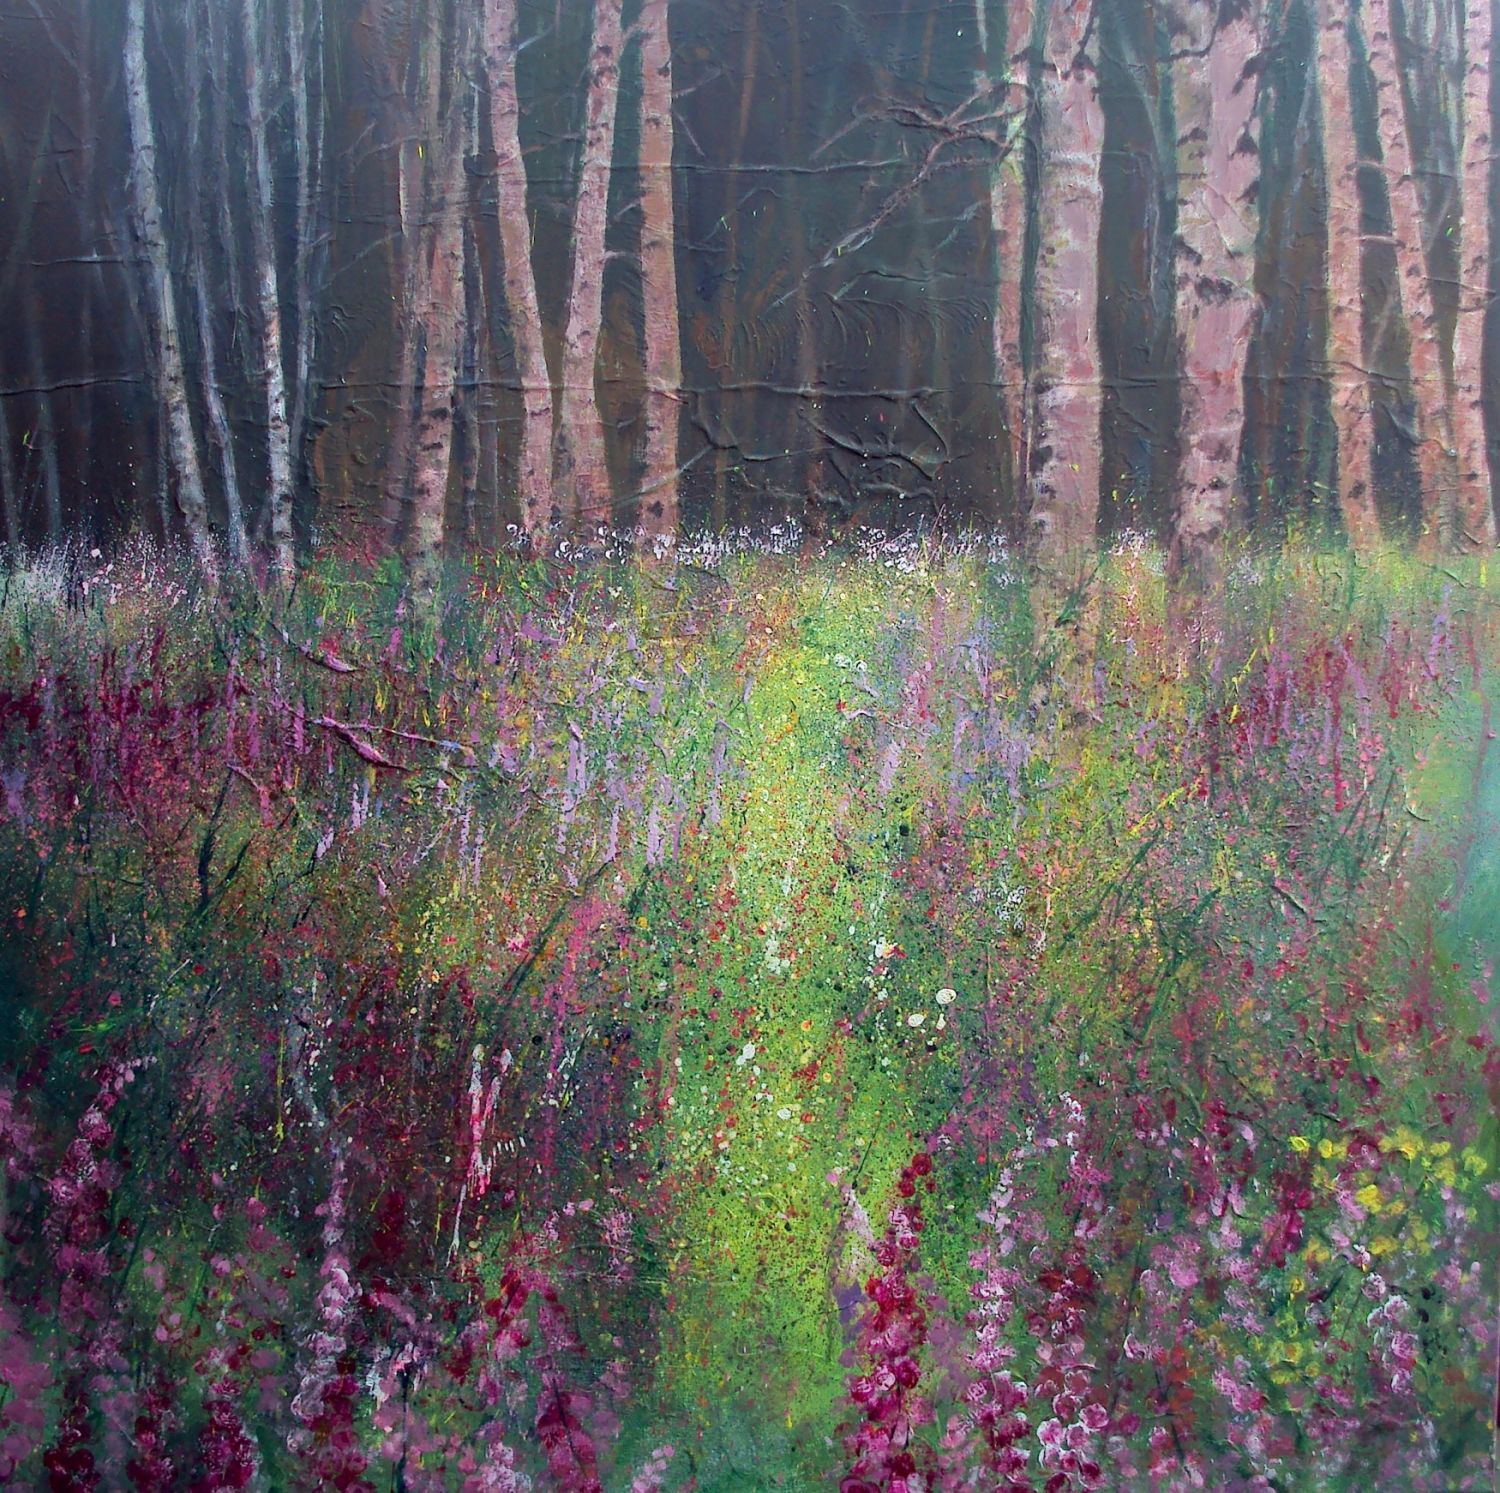 Edge of woods, foxgloves